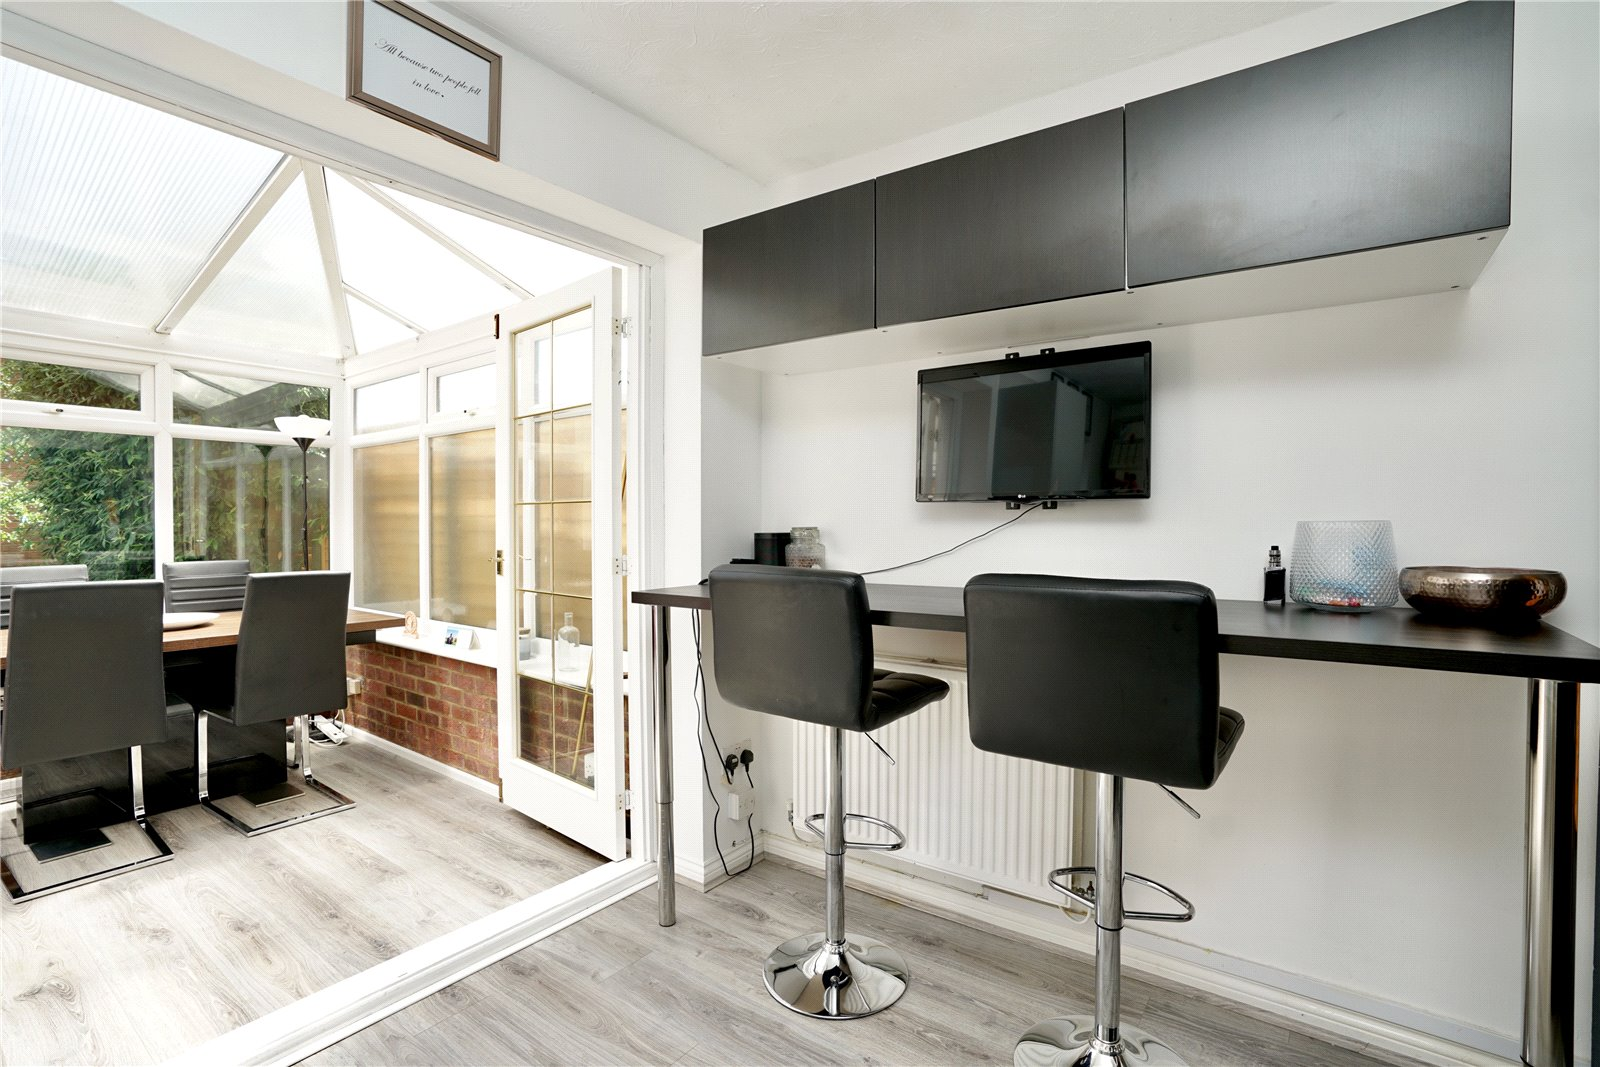 3 bed house for sale in Swift Close, St. Neots  - Property Image 7